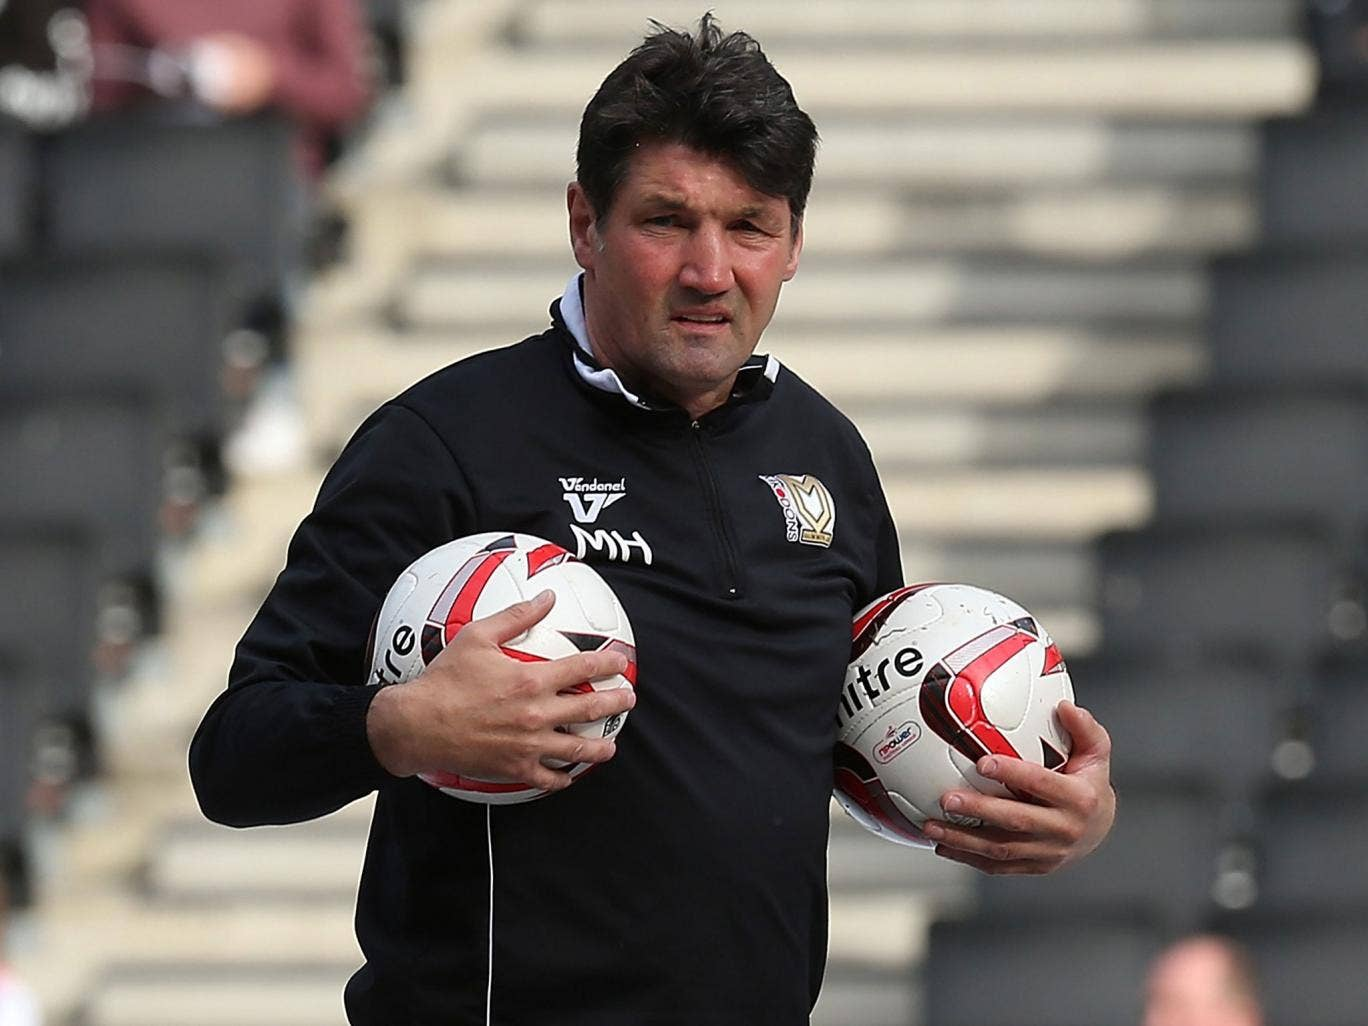 Turf luck: Mick Harford hit an own goal in Luton's last match on plastic